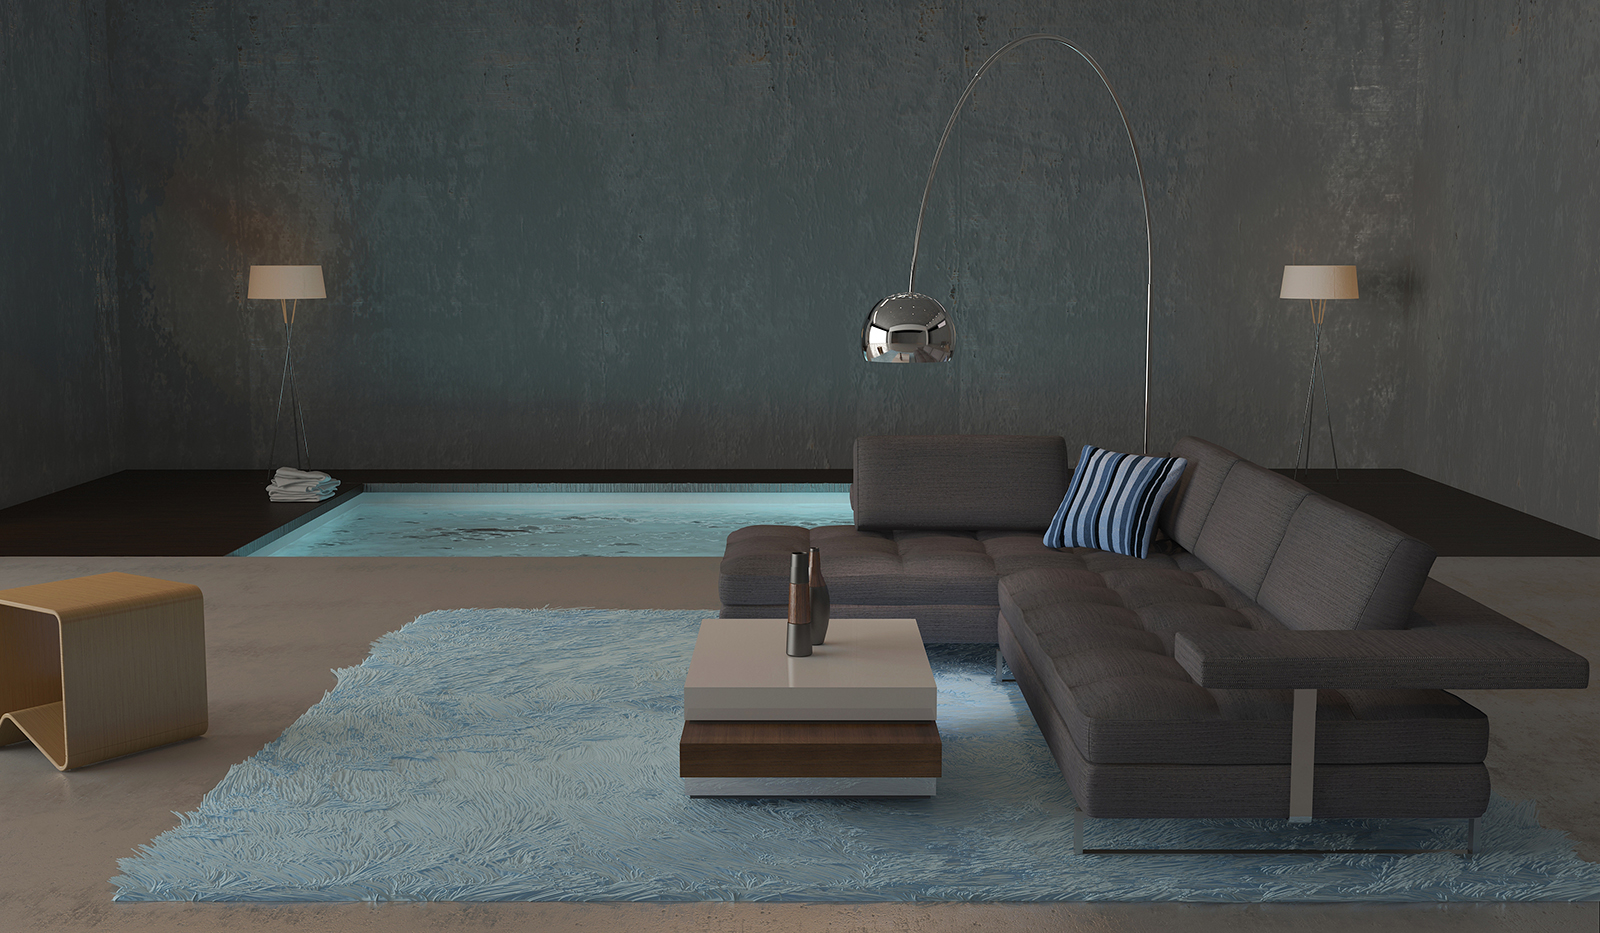 Milano.de_furniture_Sofa & table_01_Yianart